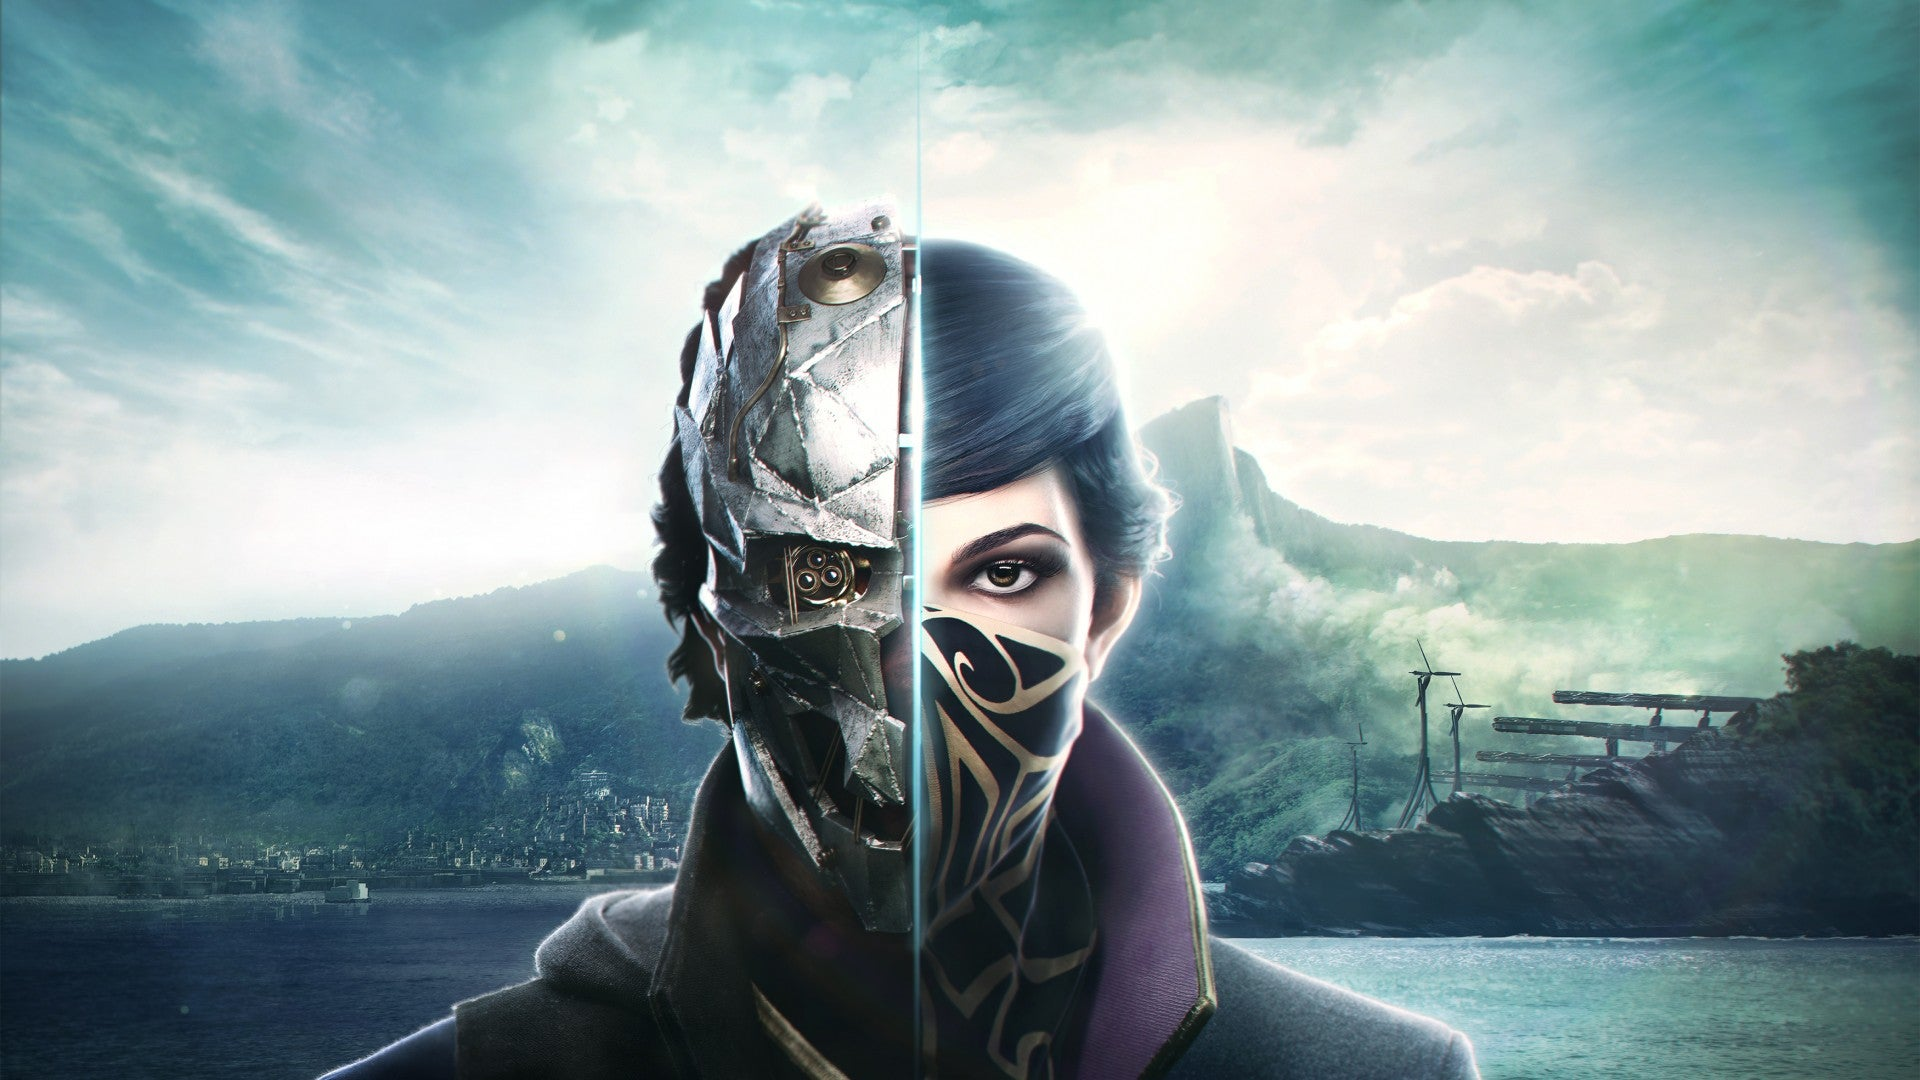 dishonored 3: what we want to see | trusted reviews